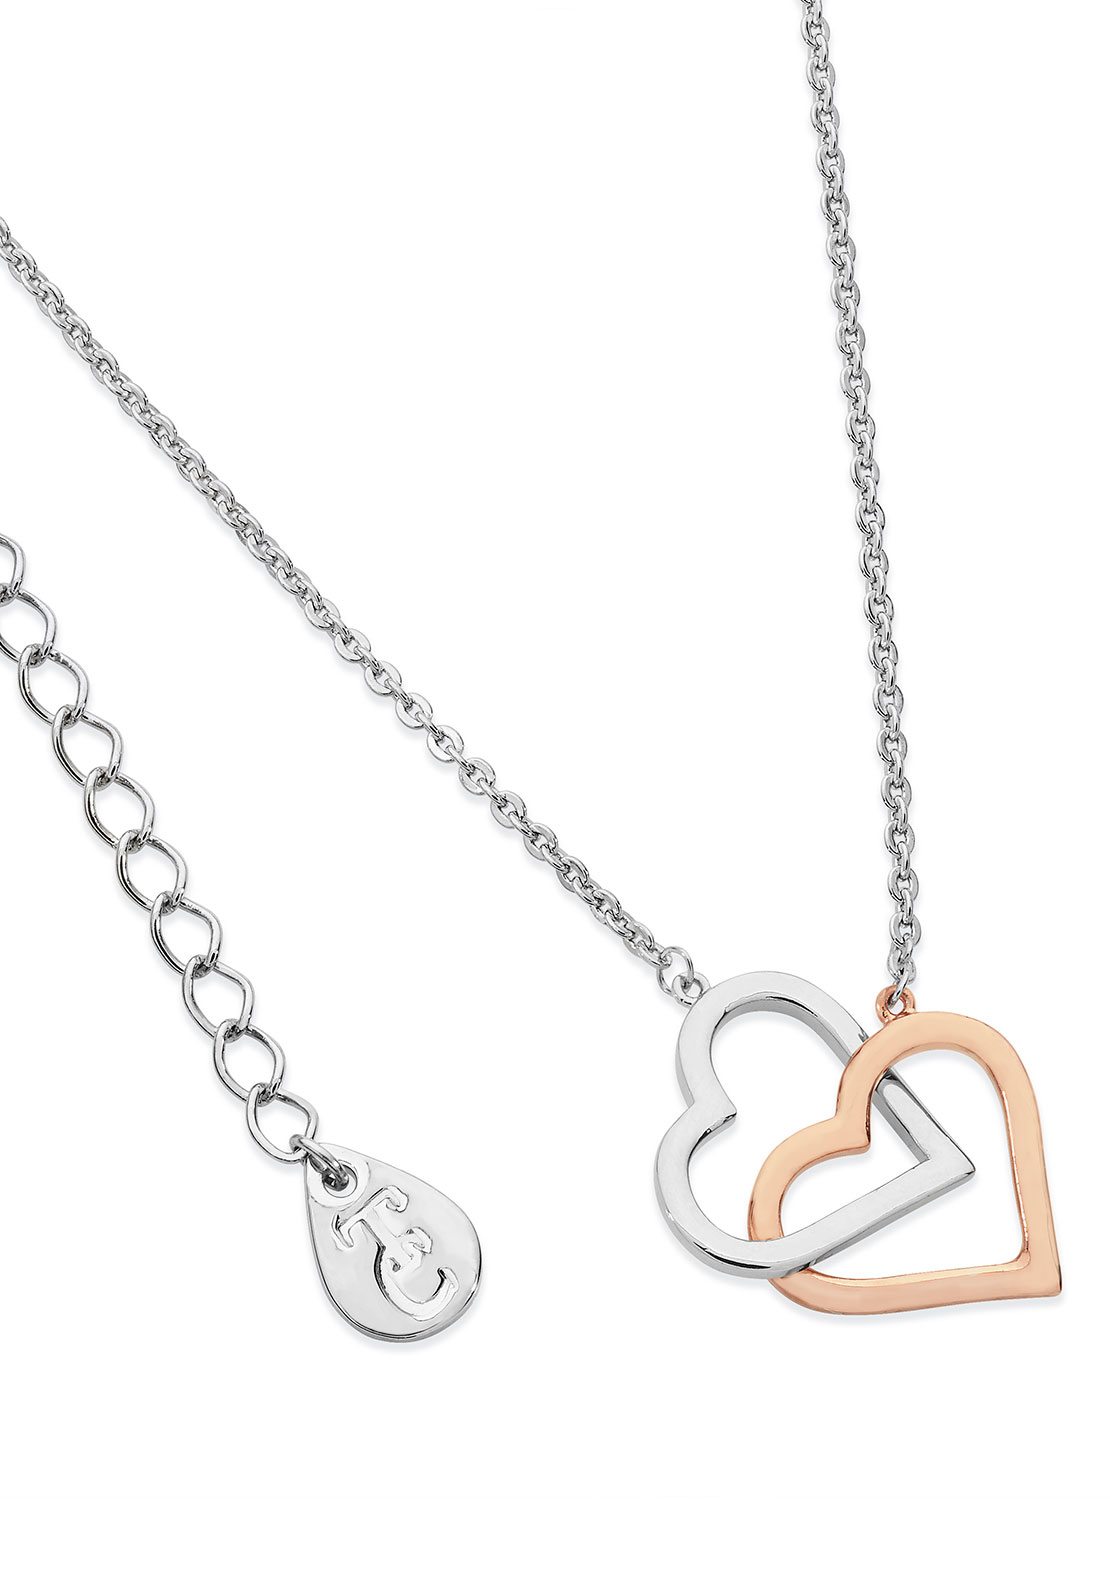 Tipperary Crystal Interlinked Heart Necklace